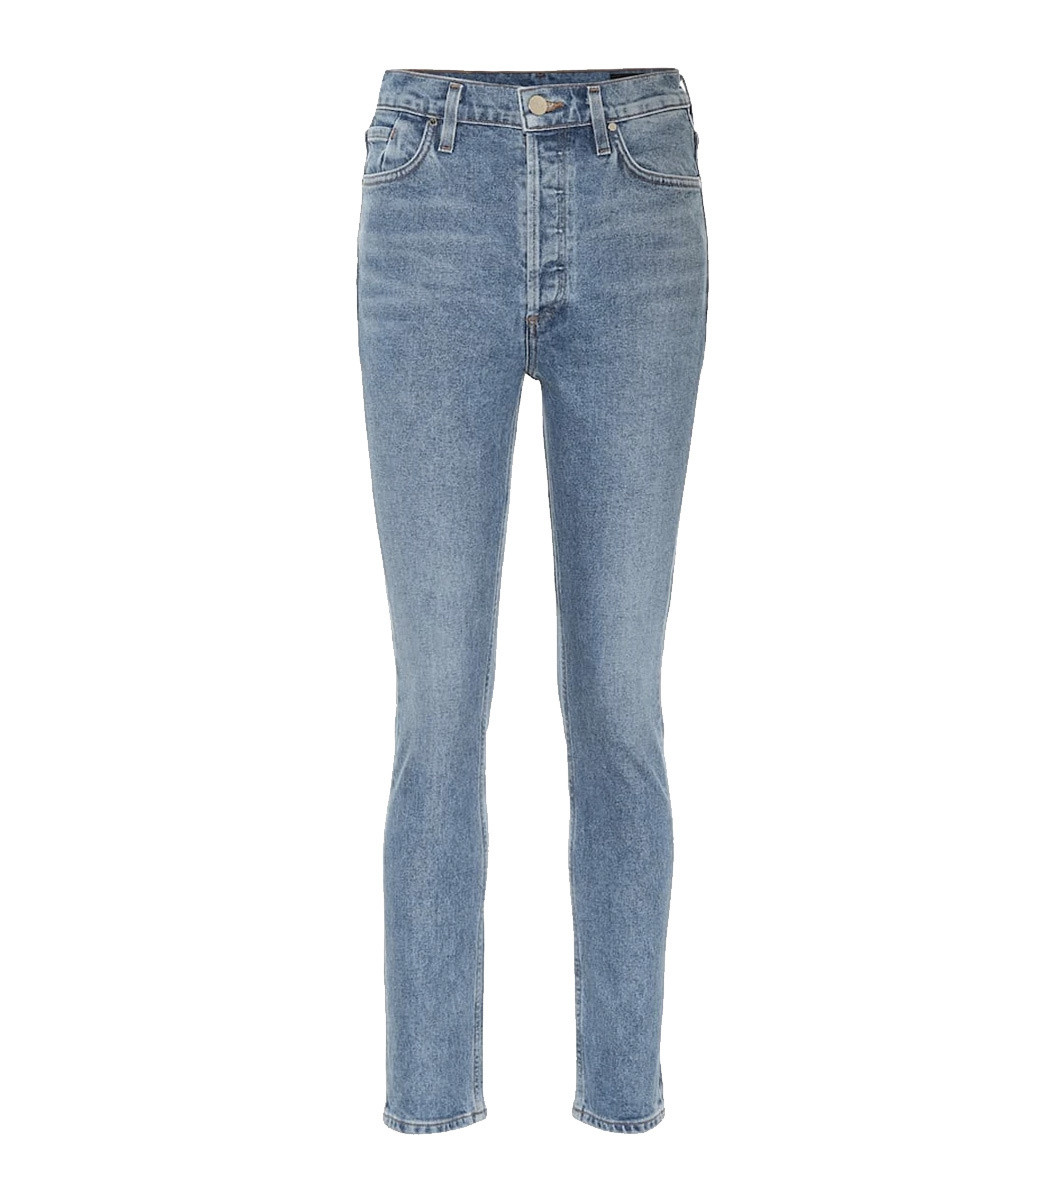 Goldsign The High-Rise Slim Straight Jeans in Blue